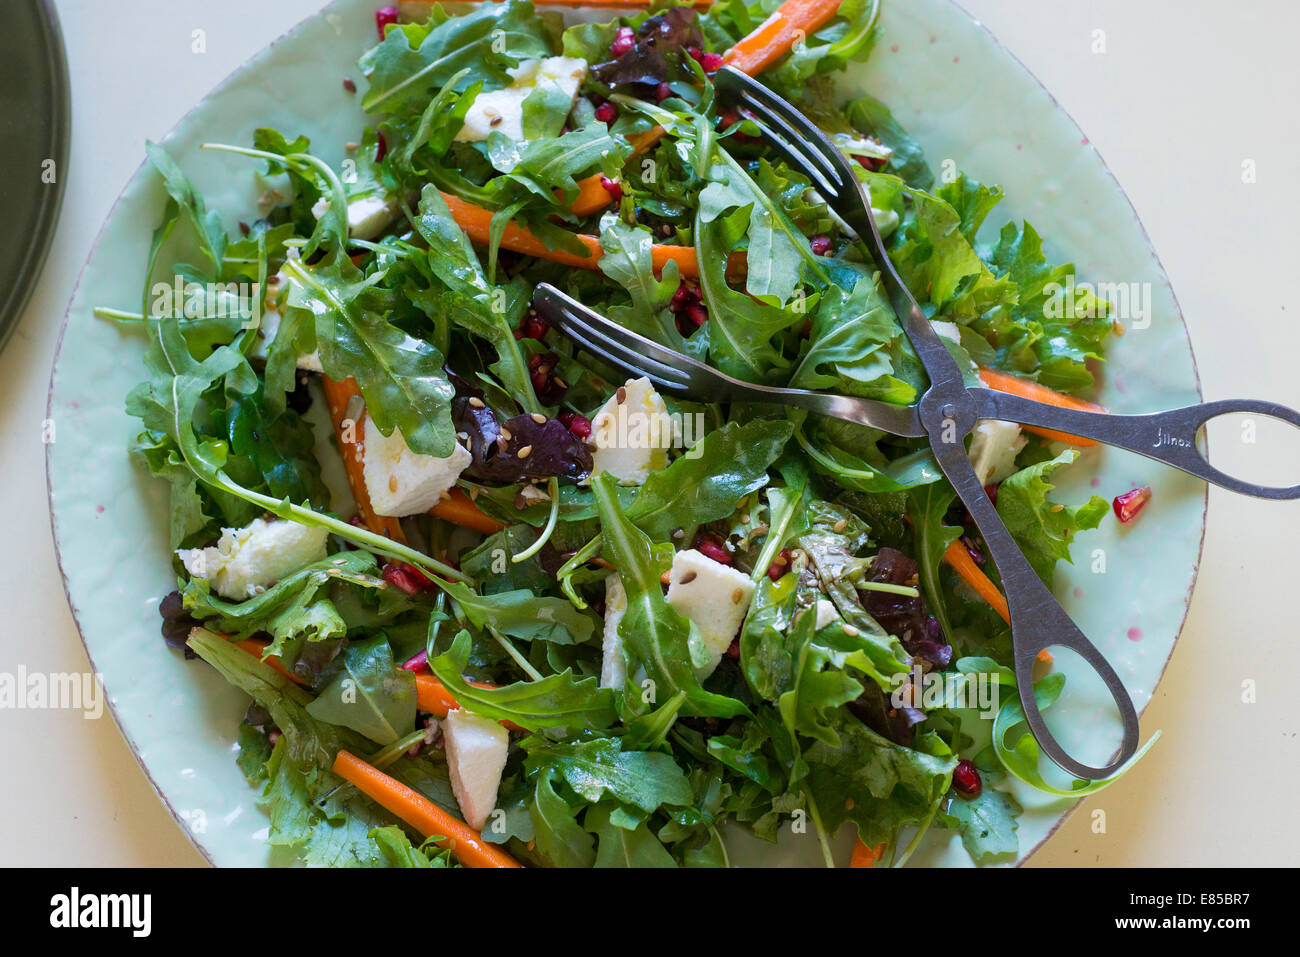 Rocket salad with, goats cheese, grated carrot, dressing and silver tongs. - Stock Image